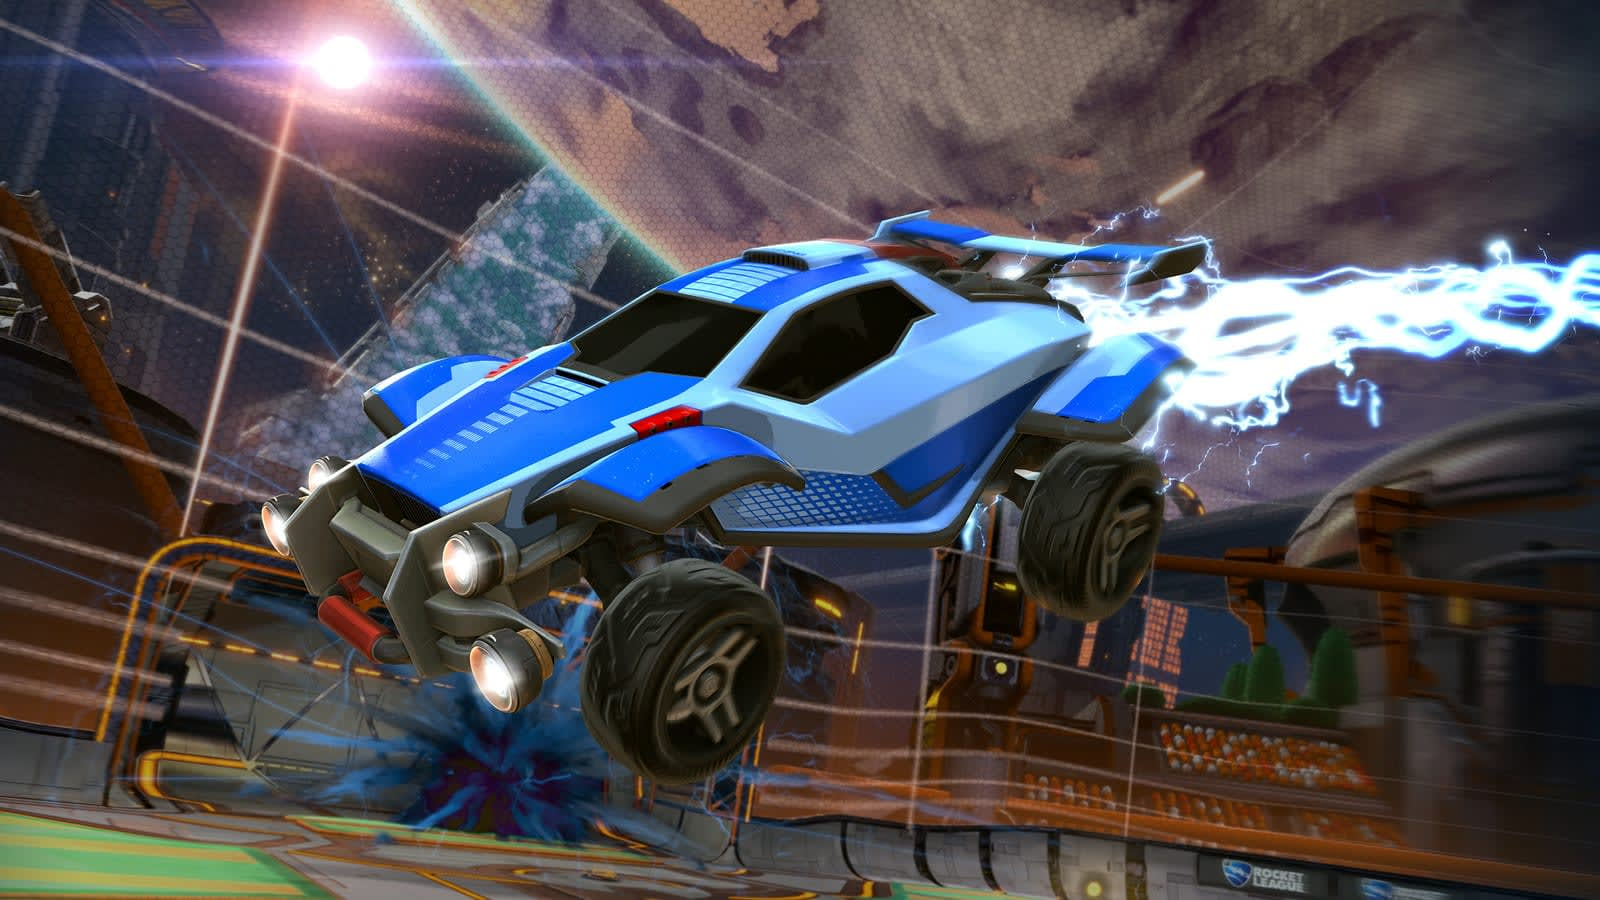 Rocket League' blasts into 4K with PS4 Pro support